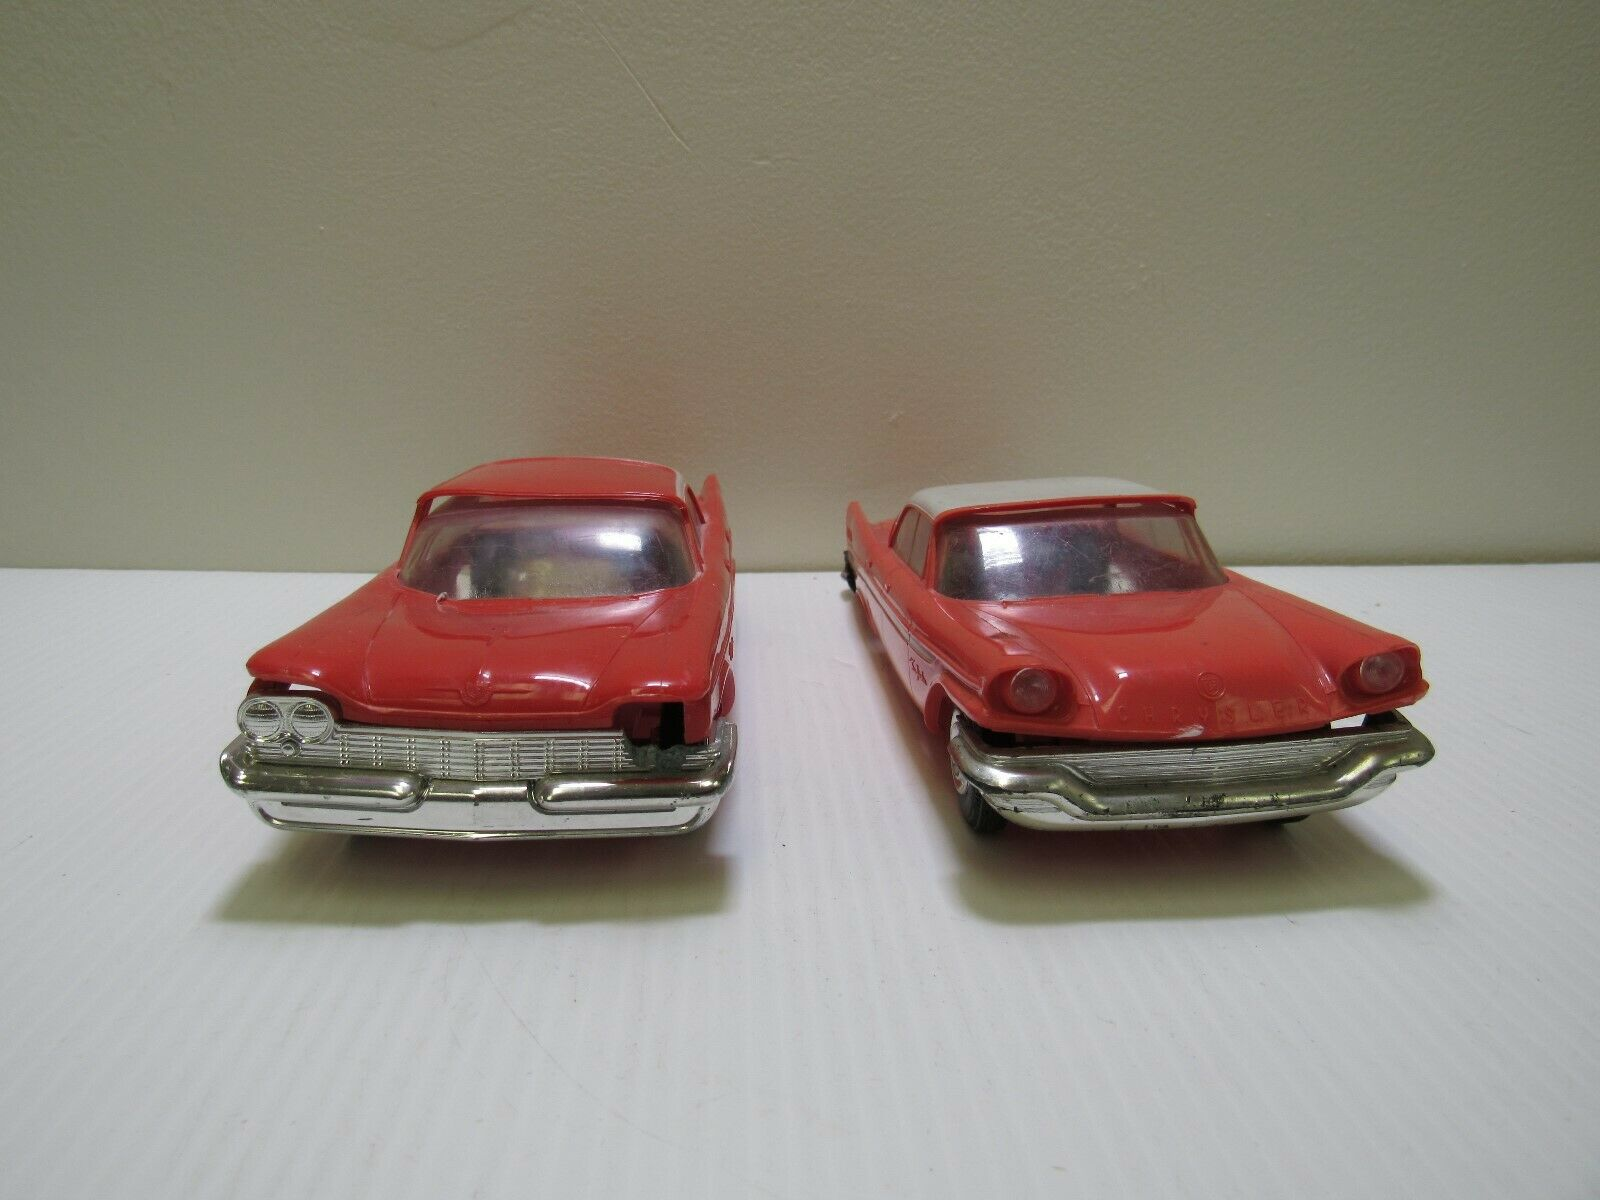 1957 & 1959 Chrysler New Yorker Johan Dealer Promo Cars